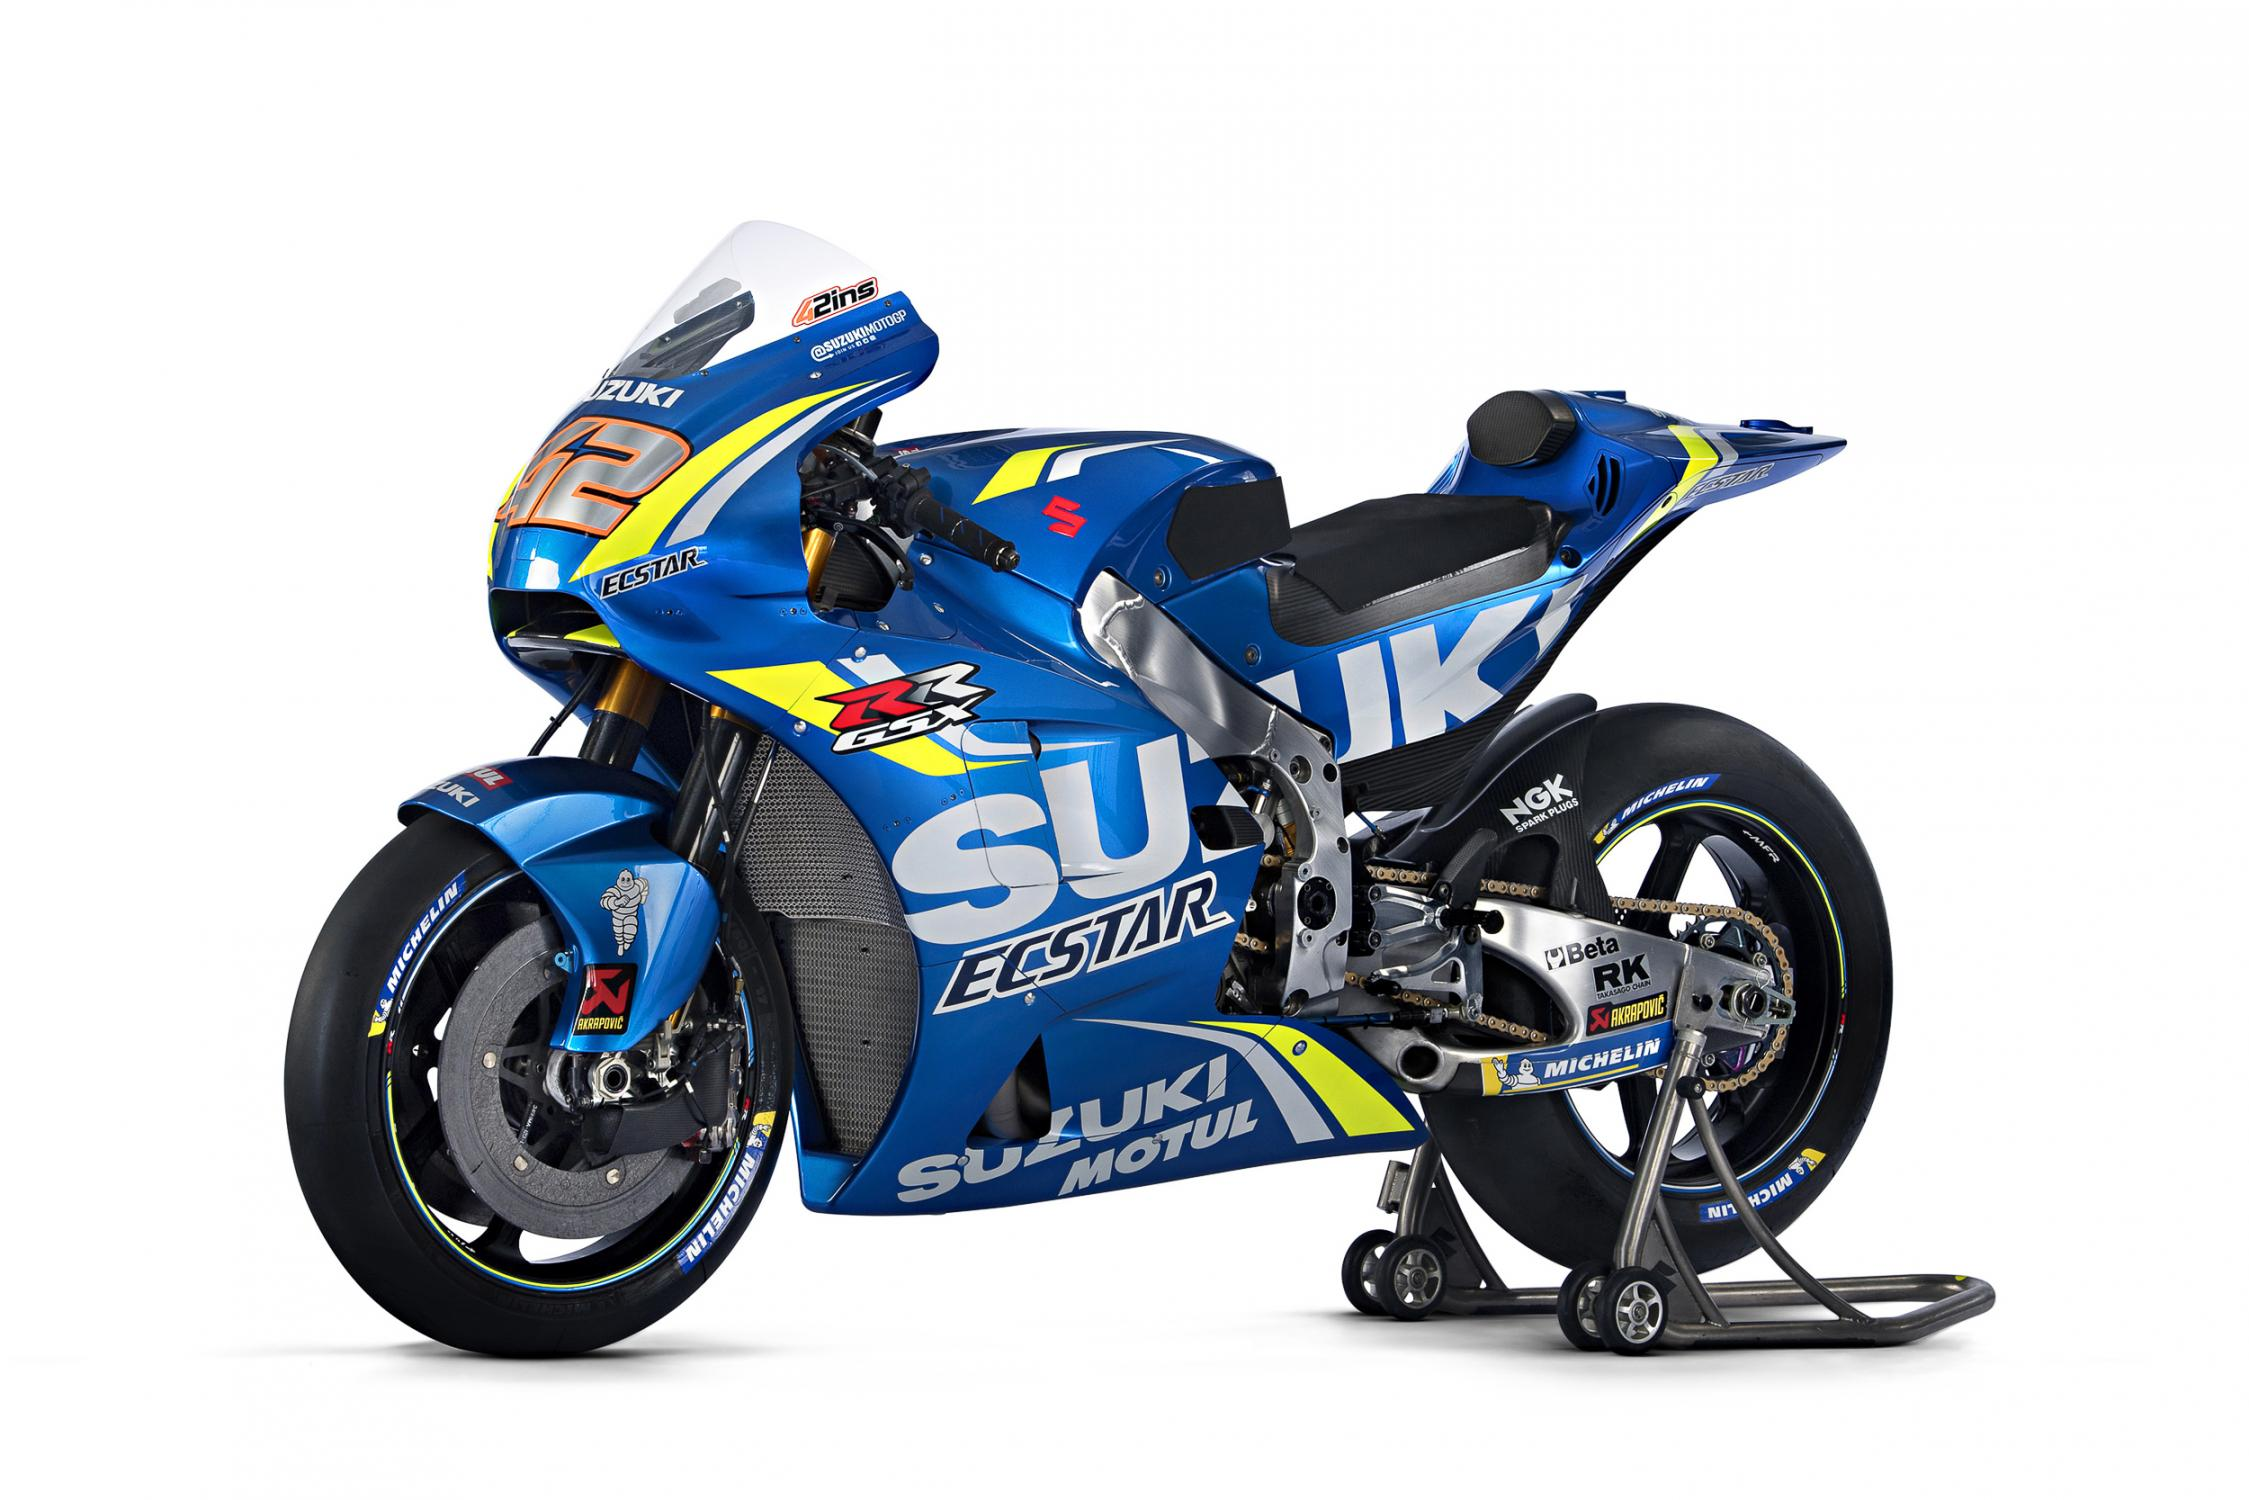 suzuki-gsx-rr-2018-motogp-machine-003.gallery_full_top_fullscreen.jpg